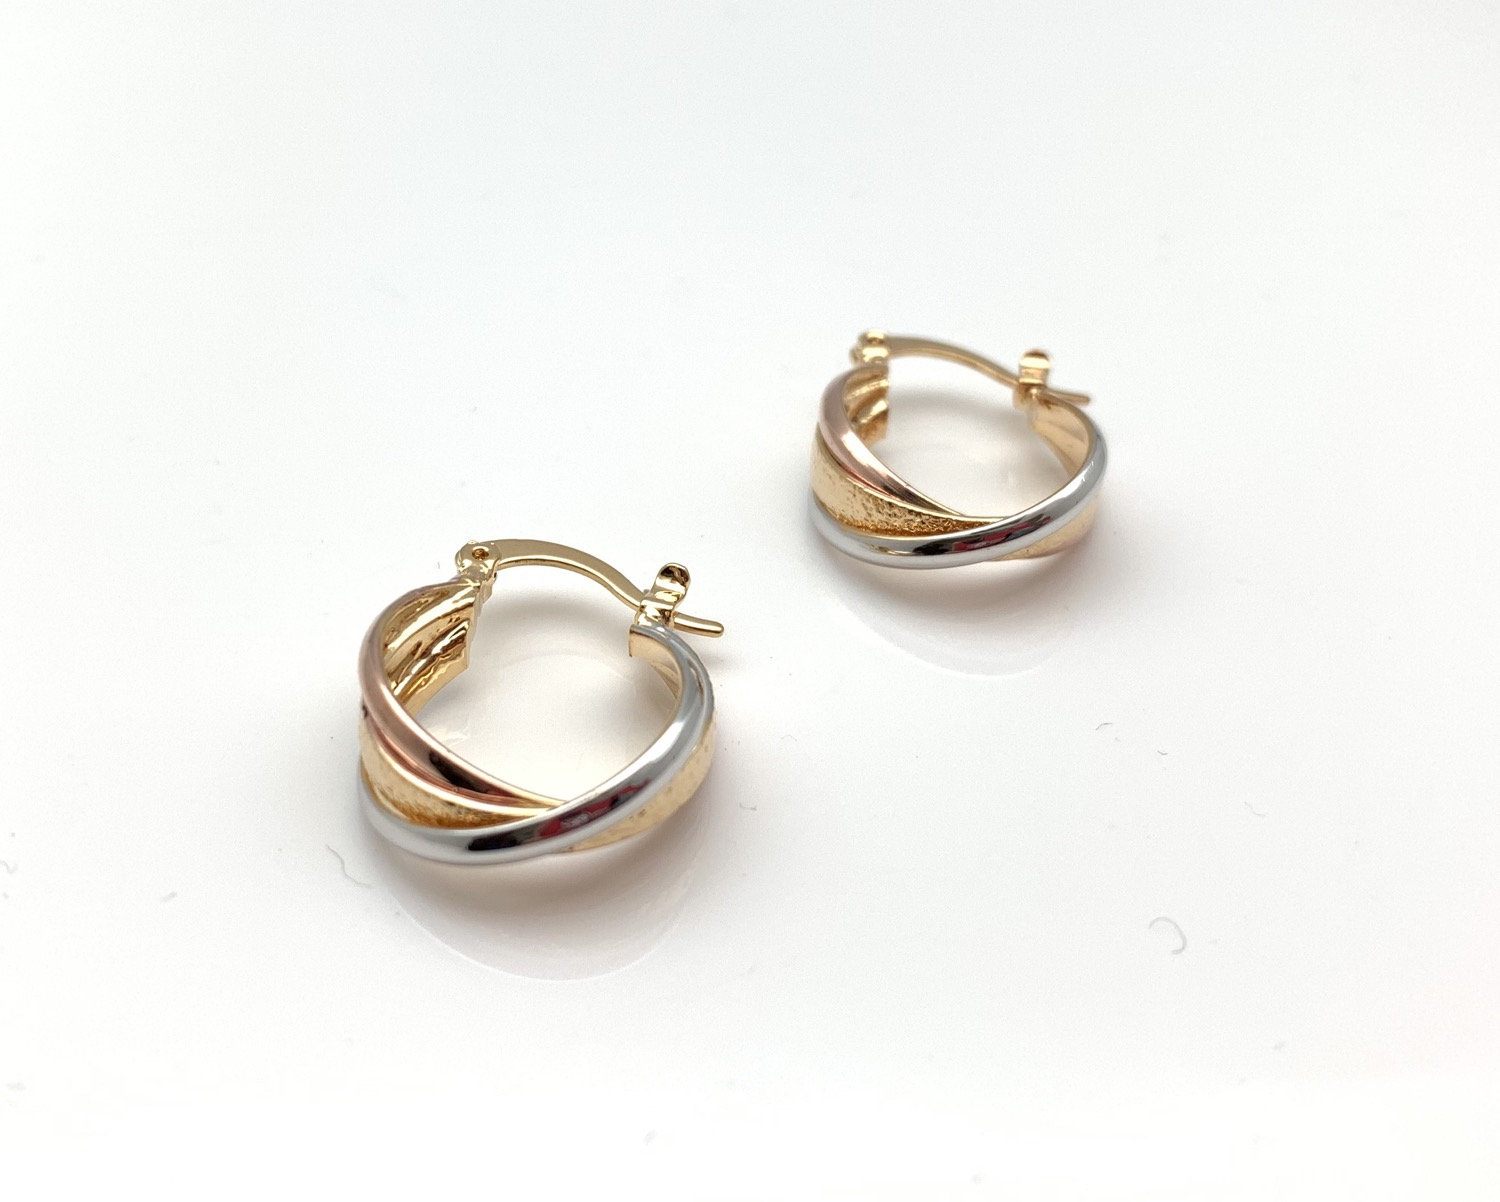 Thumbnail: H126 Tricolor Small Medium Hoop, Best Selling